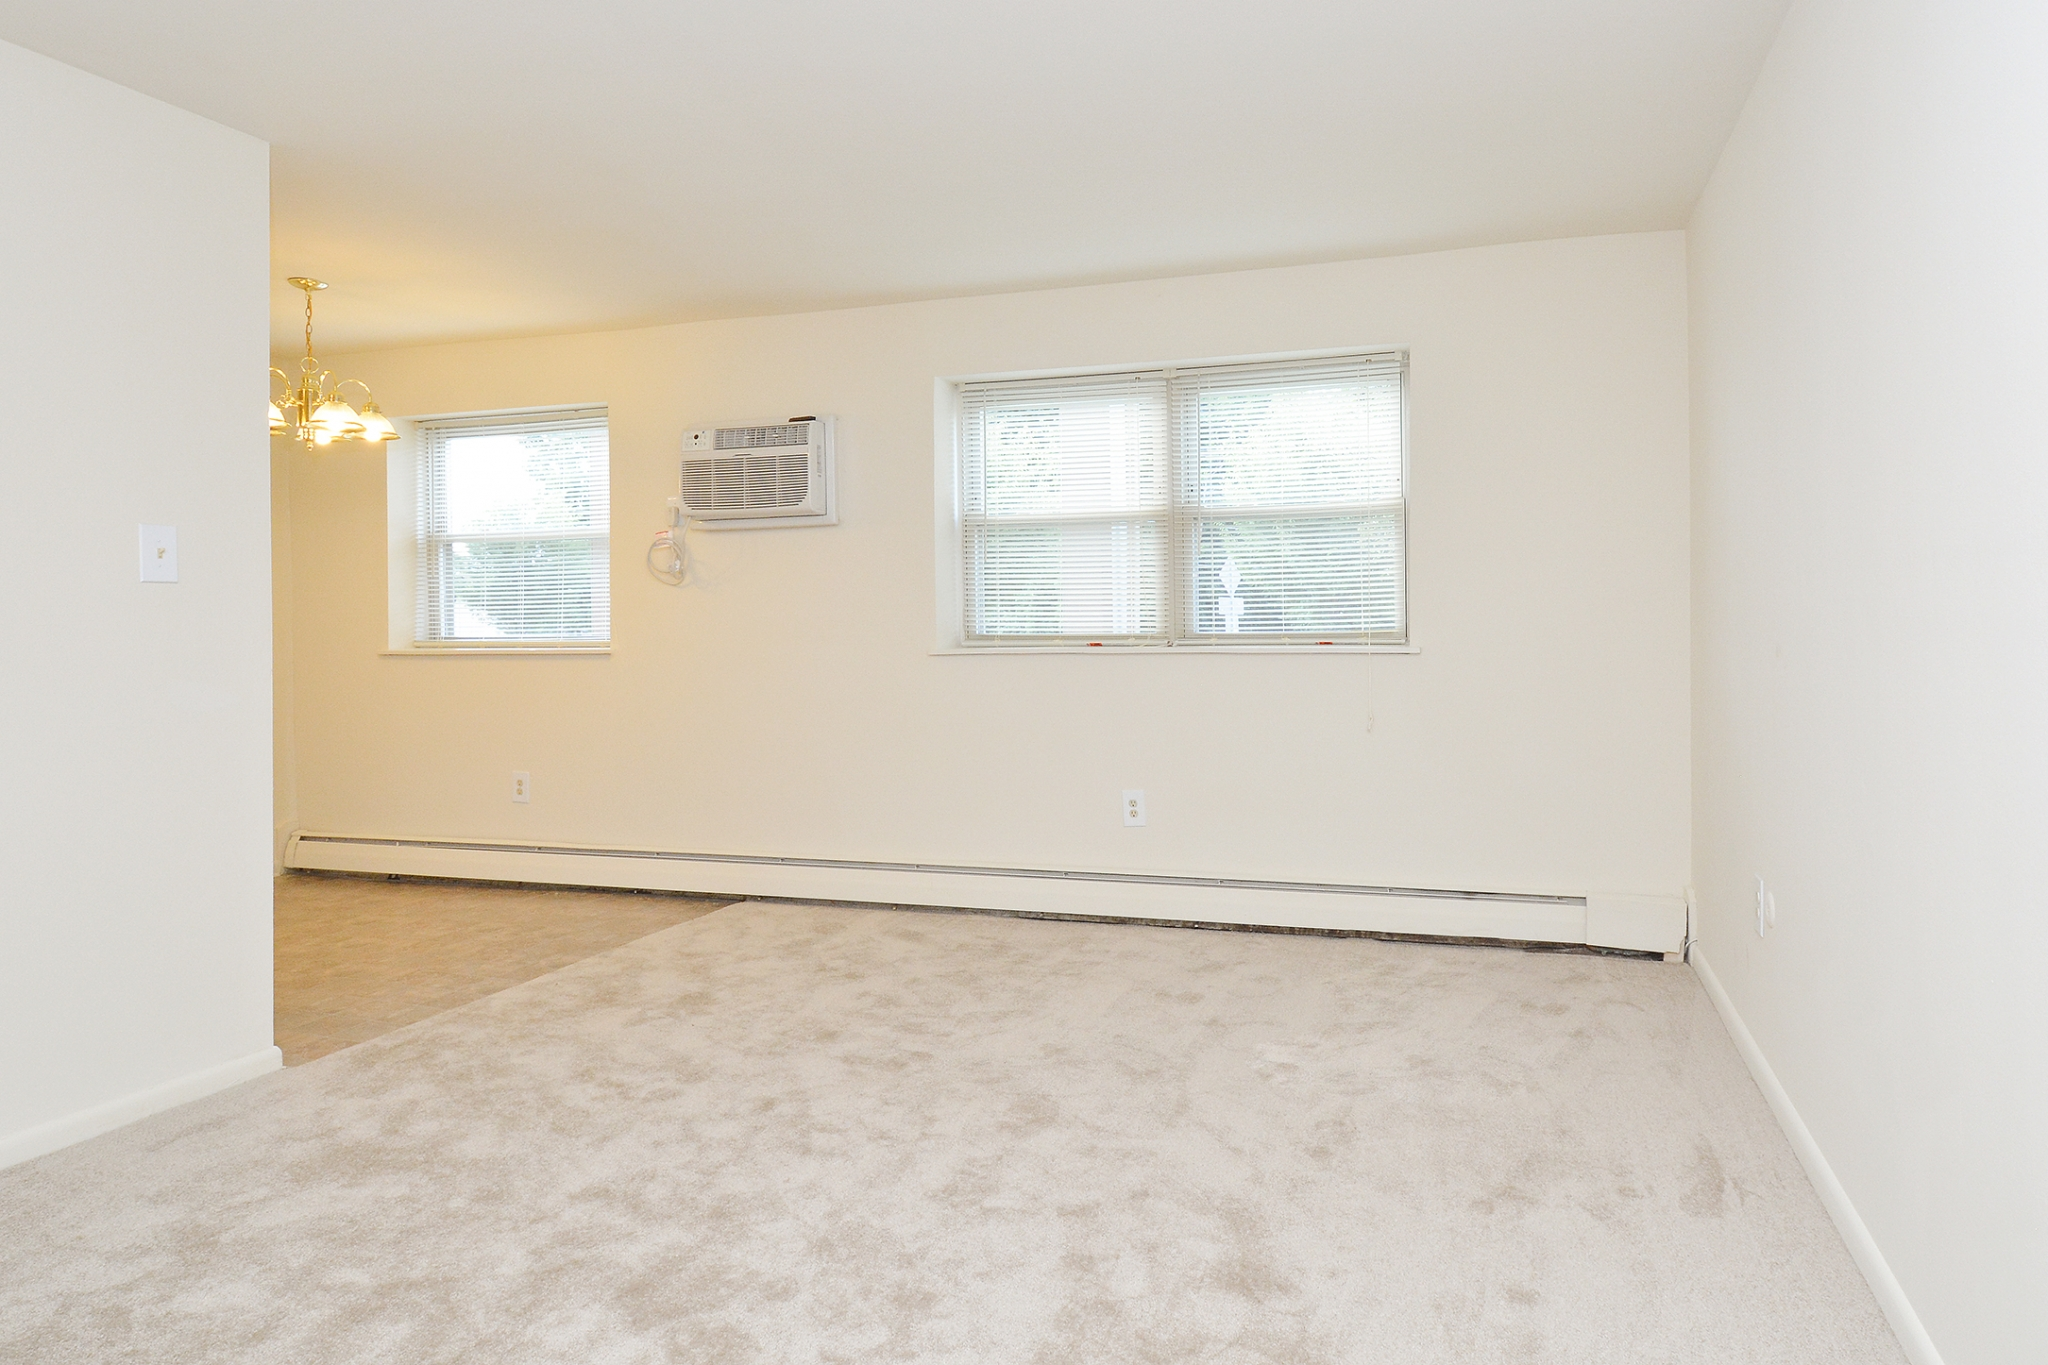 Newport Village Sample Living Room with In-Unit Air Conditioning and Two Windows | Levittown PA Apartments